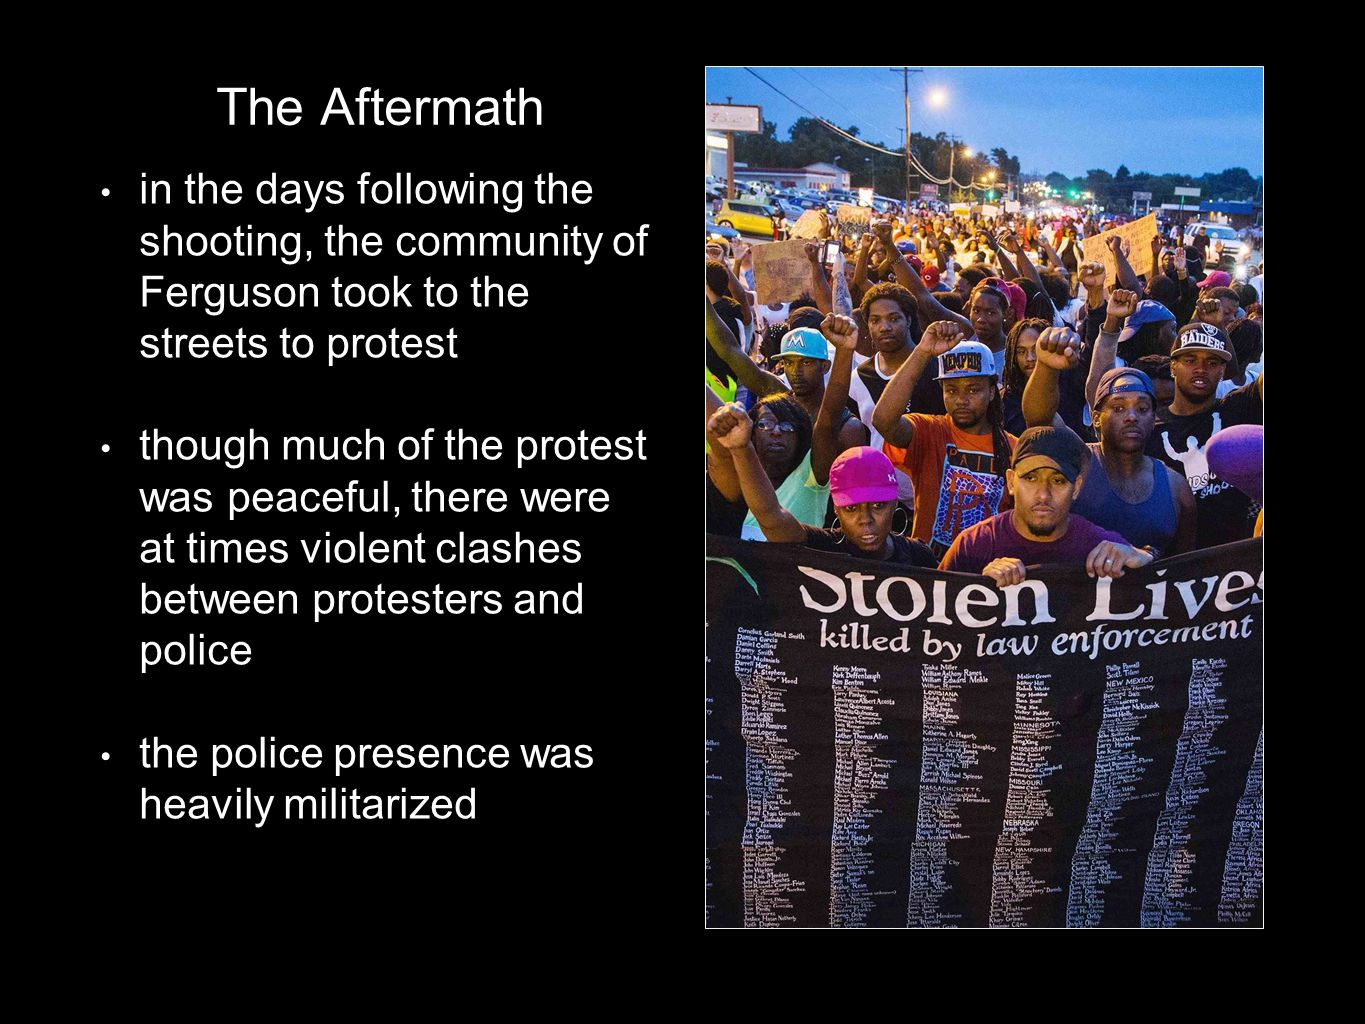 The Aftermath in the days following the shooting, the community of Ferguson took to the streets to protest though much of the protest was peaceful, there were at times violent clashes between protesters and police the police presence was heavily militarized